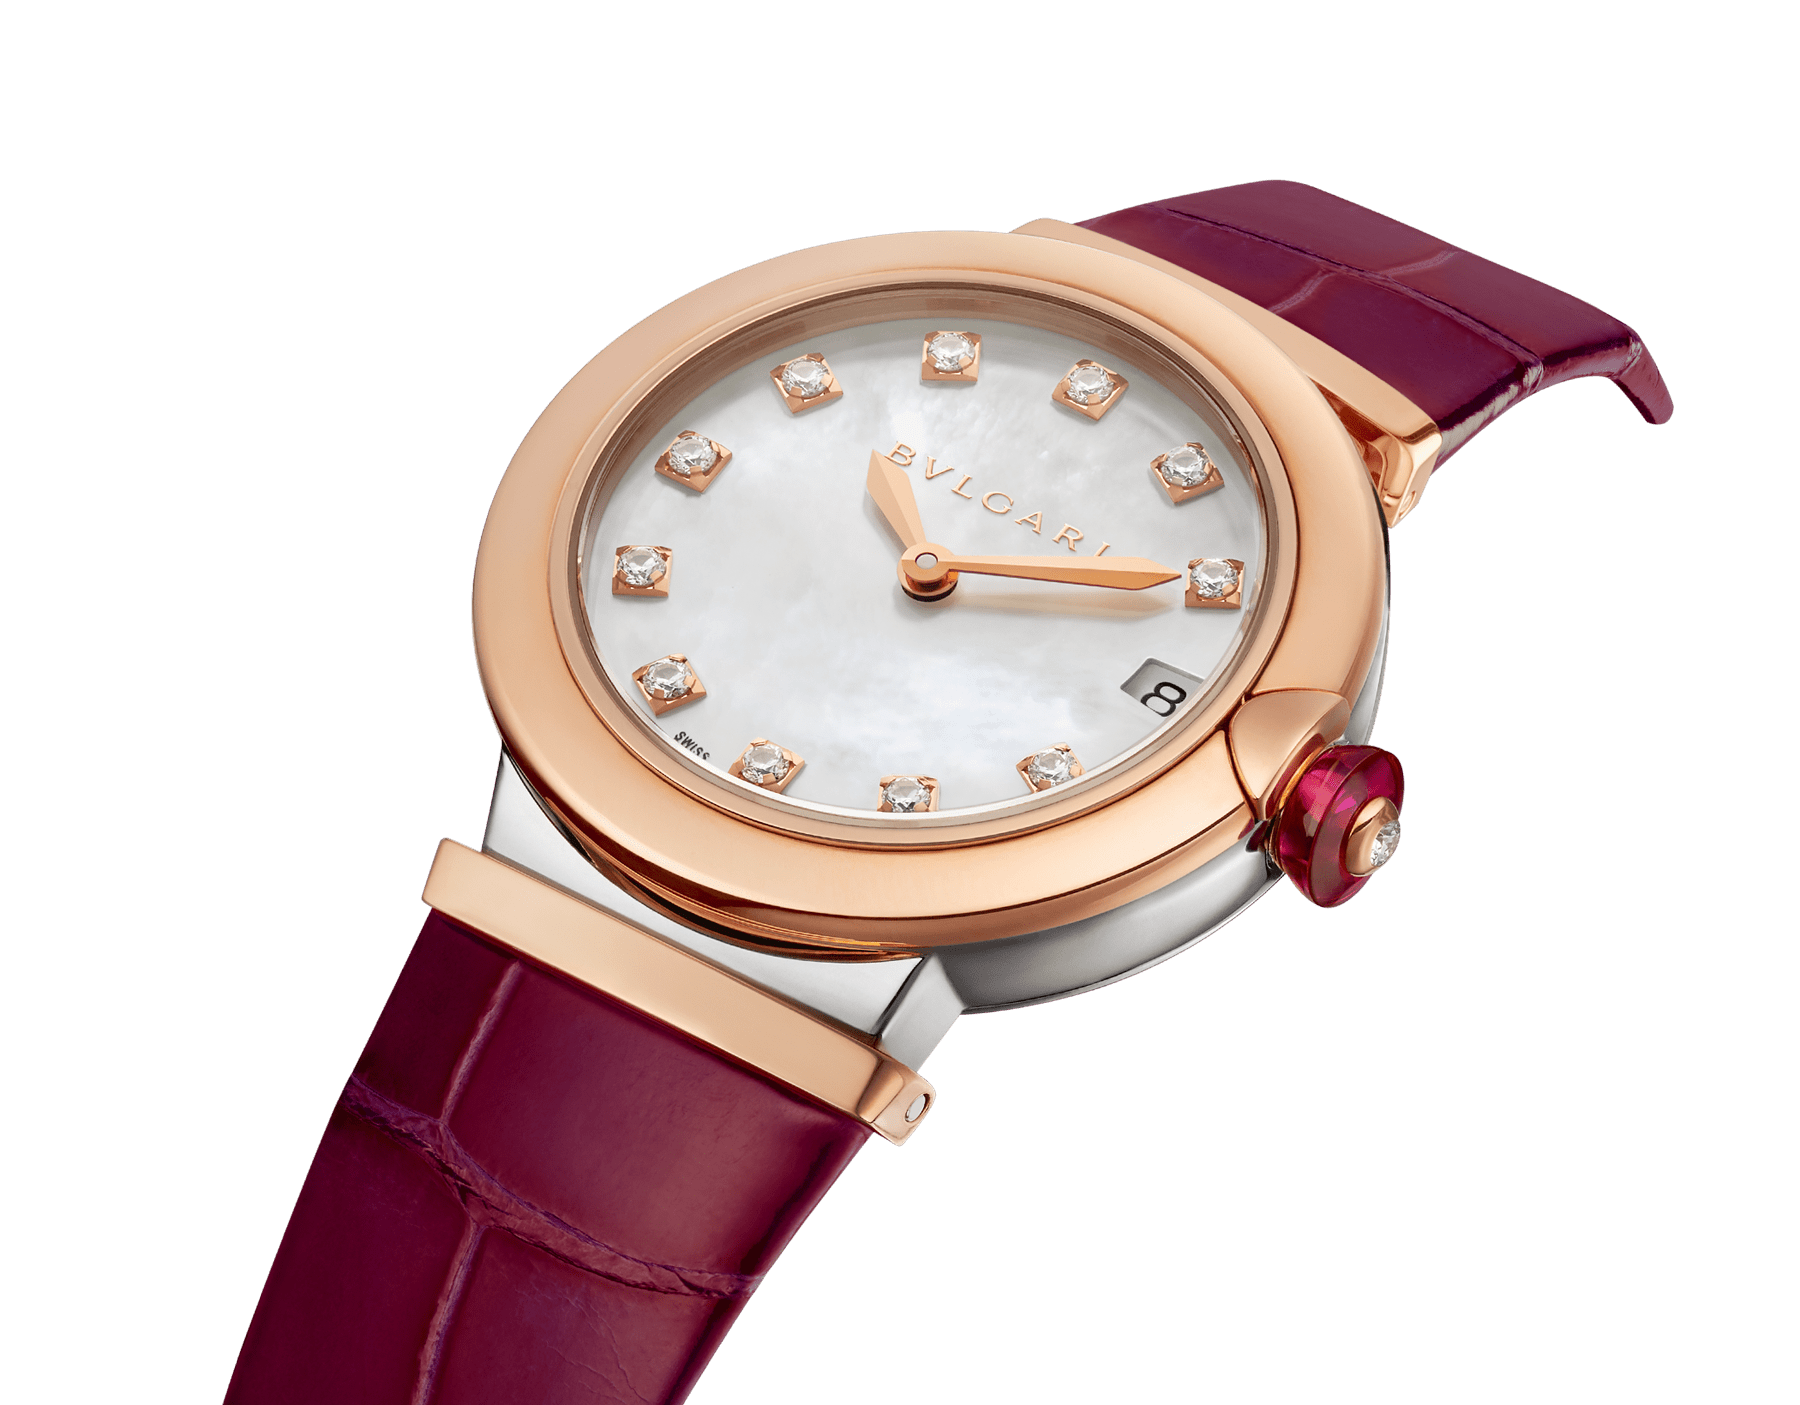 LVCEA watch with 18 kt rose gold and stainless steel case, white mother-of-pearl dial set with diamond indexes, date aperture and burgundy alligator bracelet. 102639 image 3